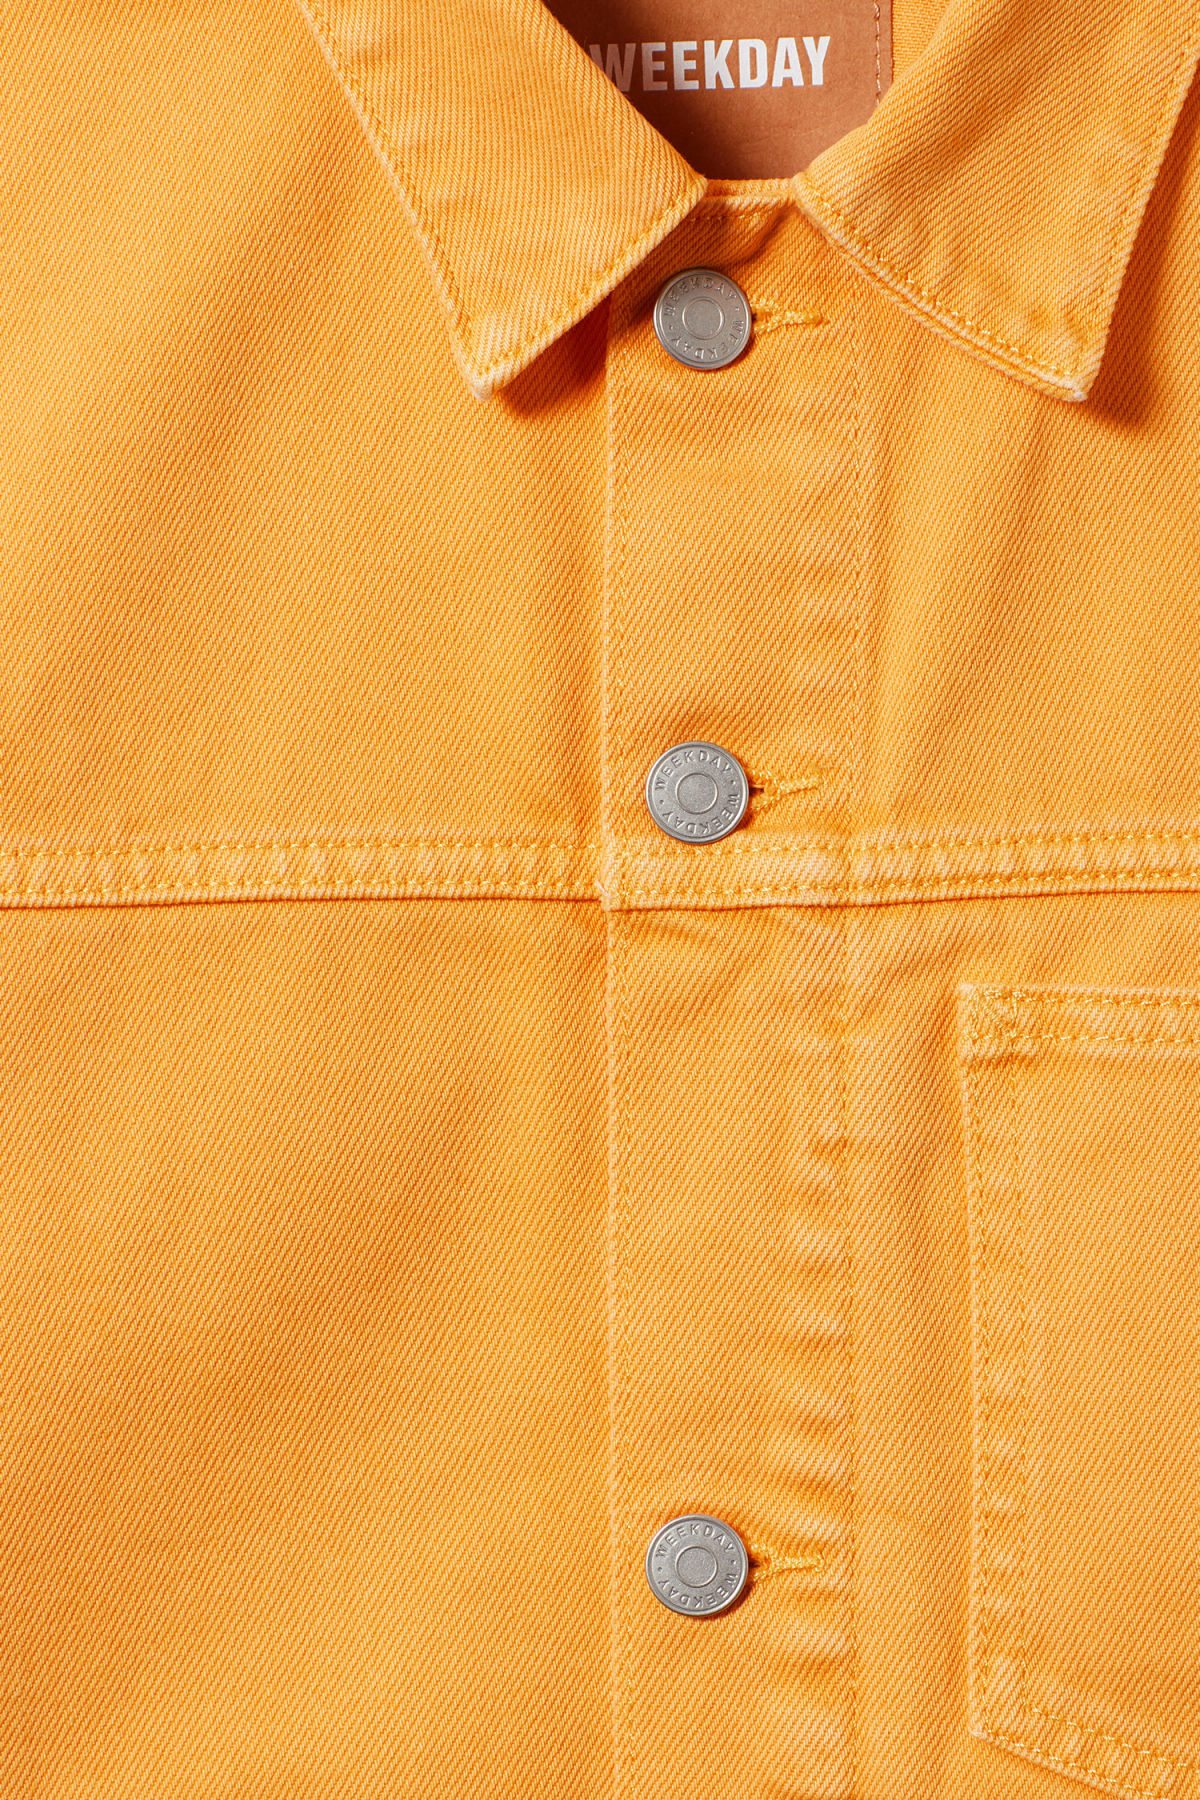 Detailed image of Weekday  in yellow